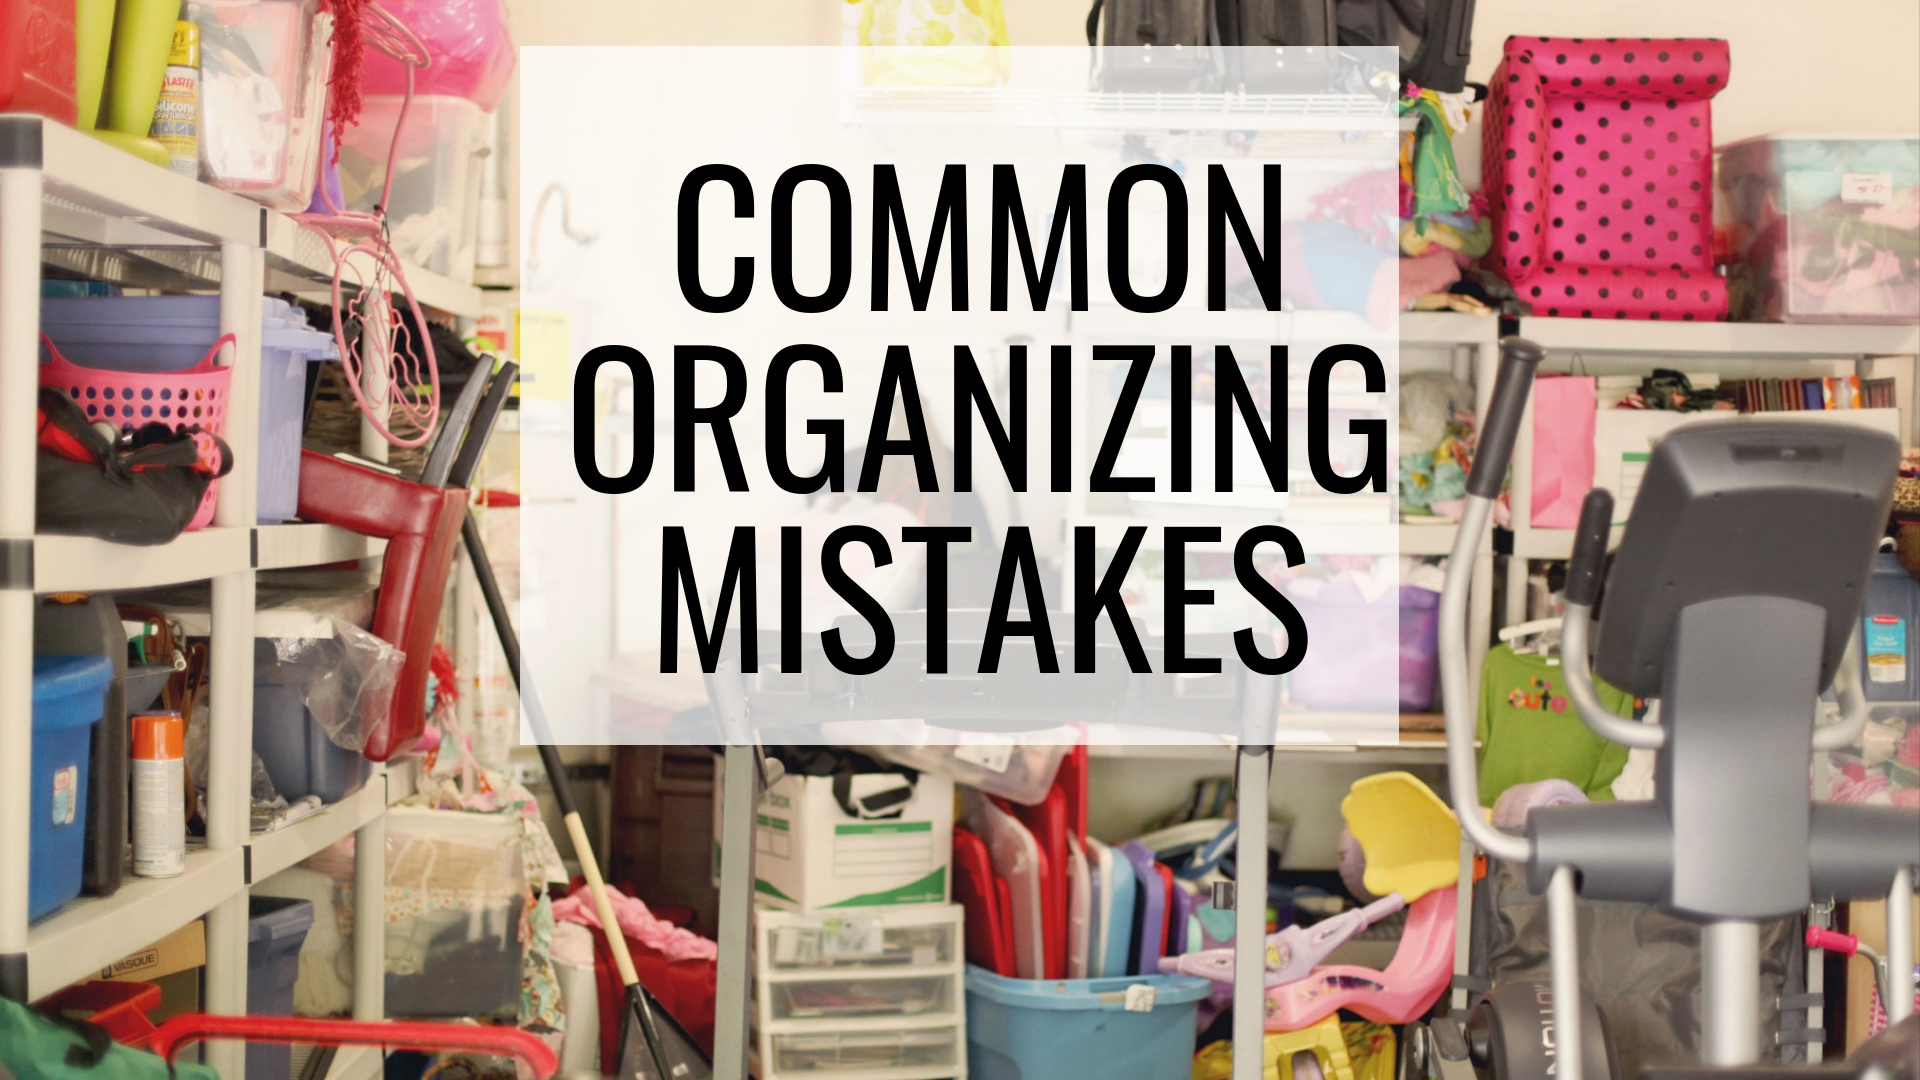 Common Organizing Mistakes and How to Avoid Them